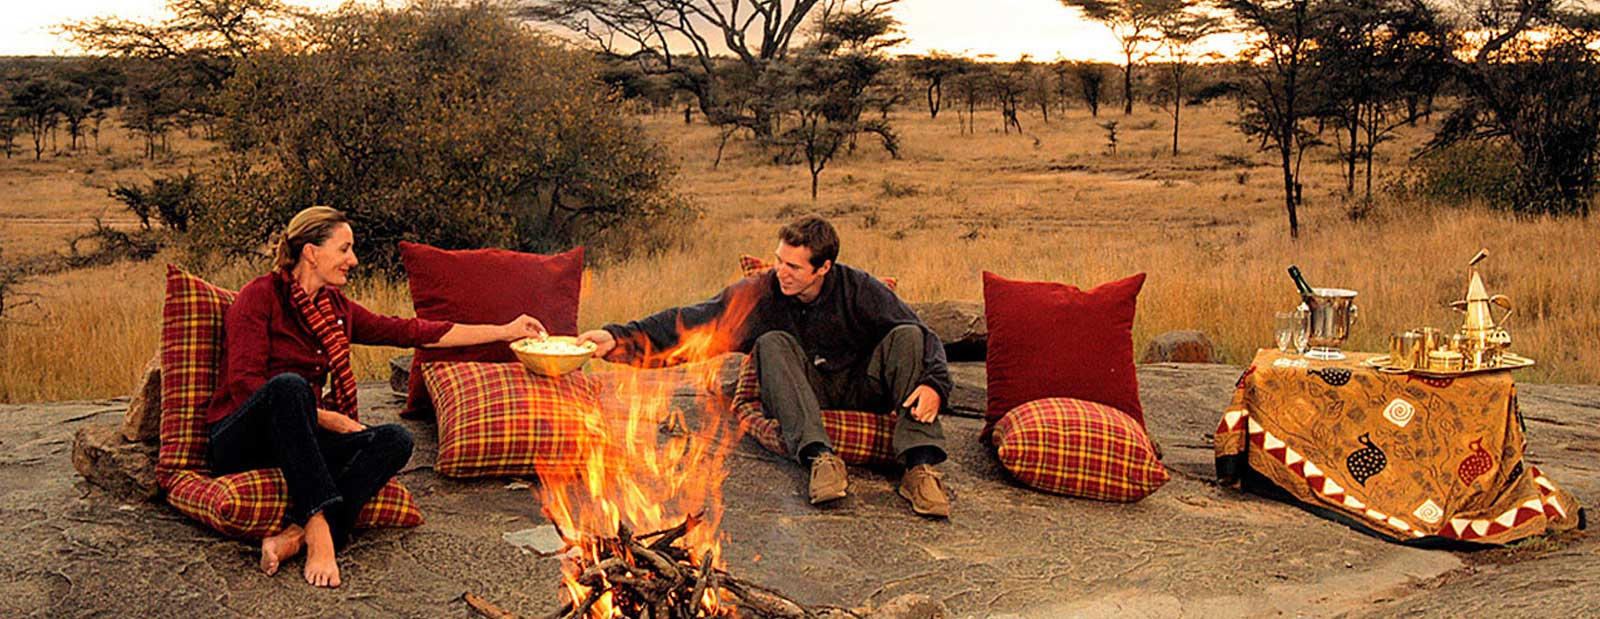 6 Days Honeymoon Safari